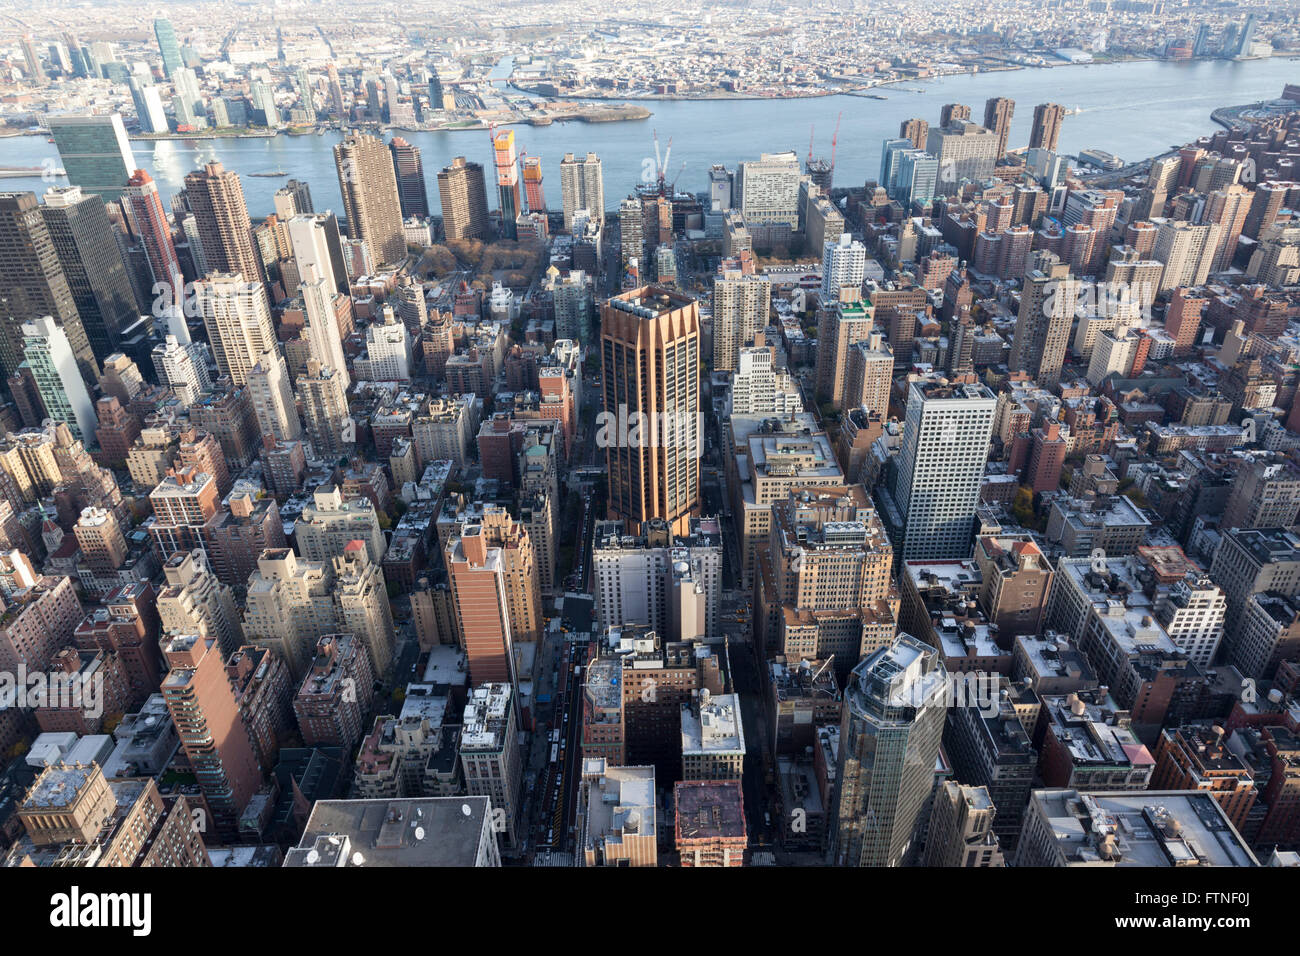 New York skyline from Empire State Building, New York, America - Stock Image